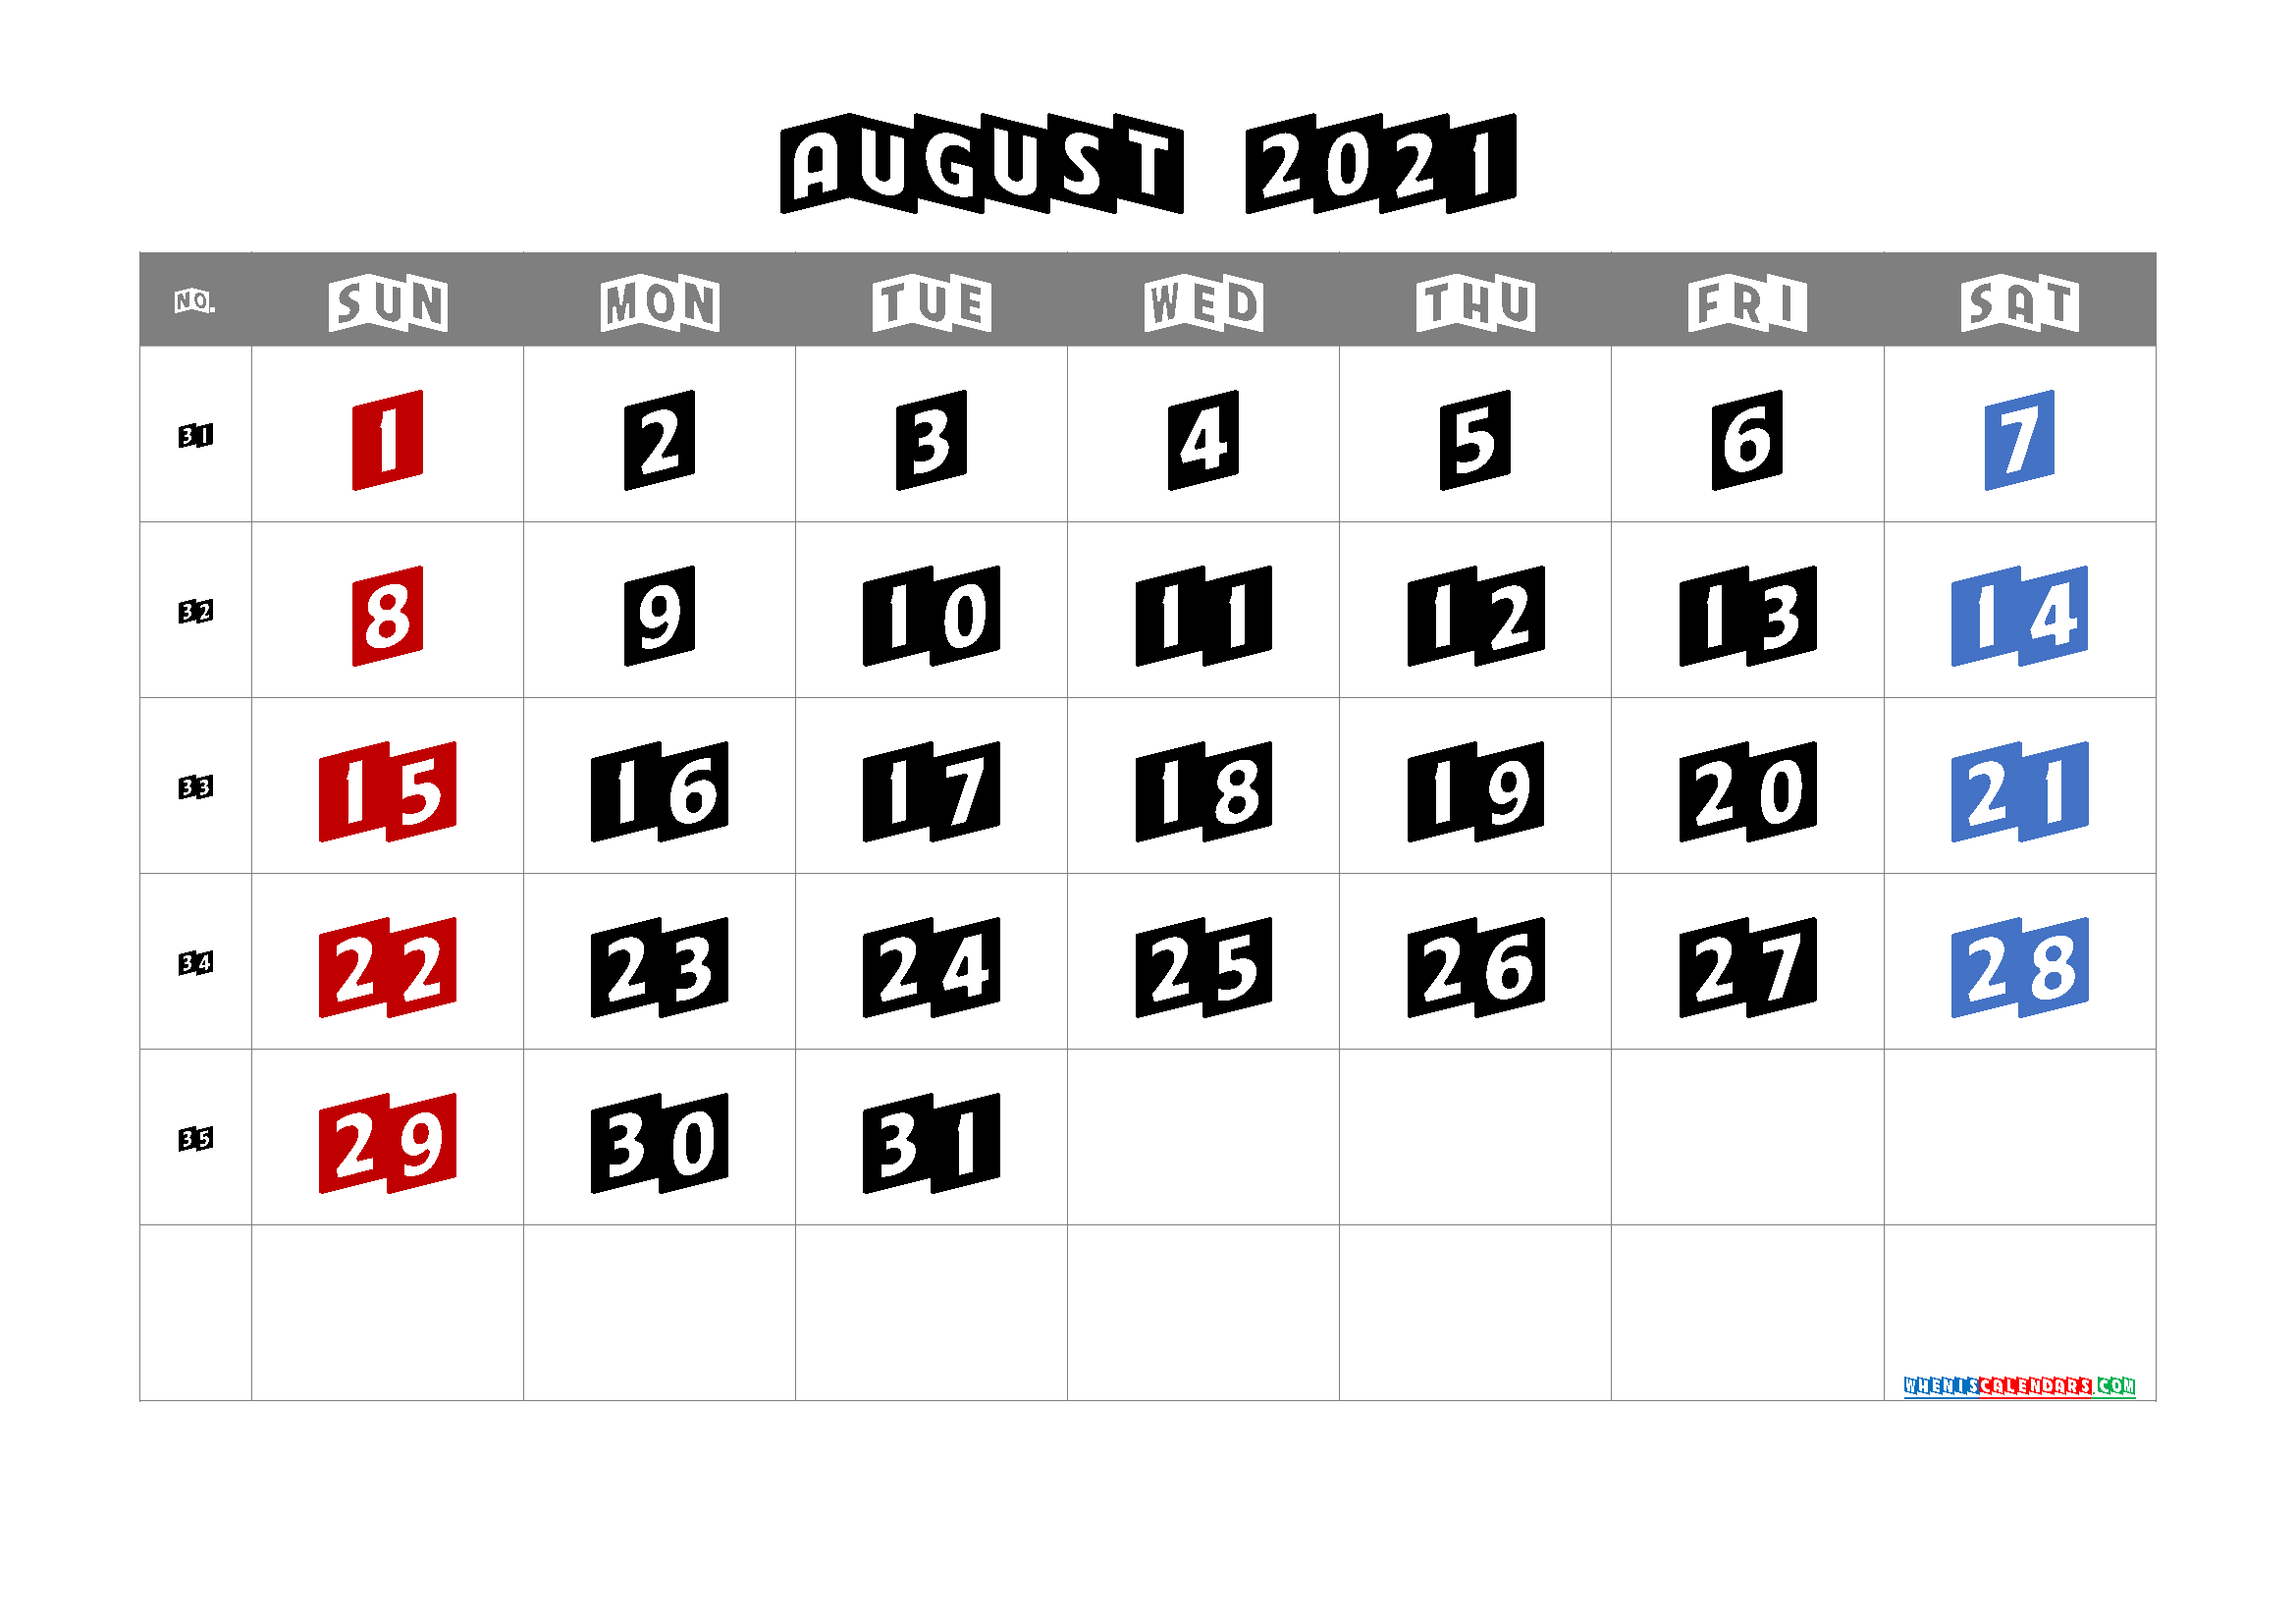 Free Printable Calendar August 2021 2022 and 2023